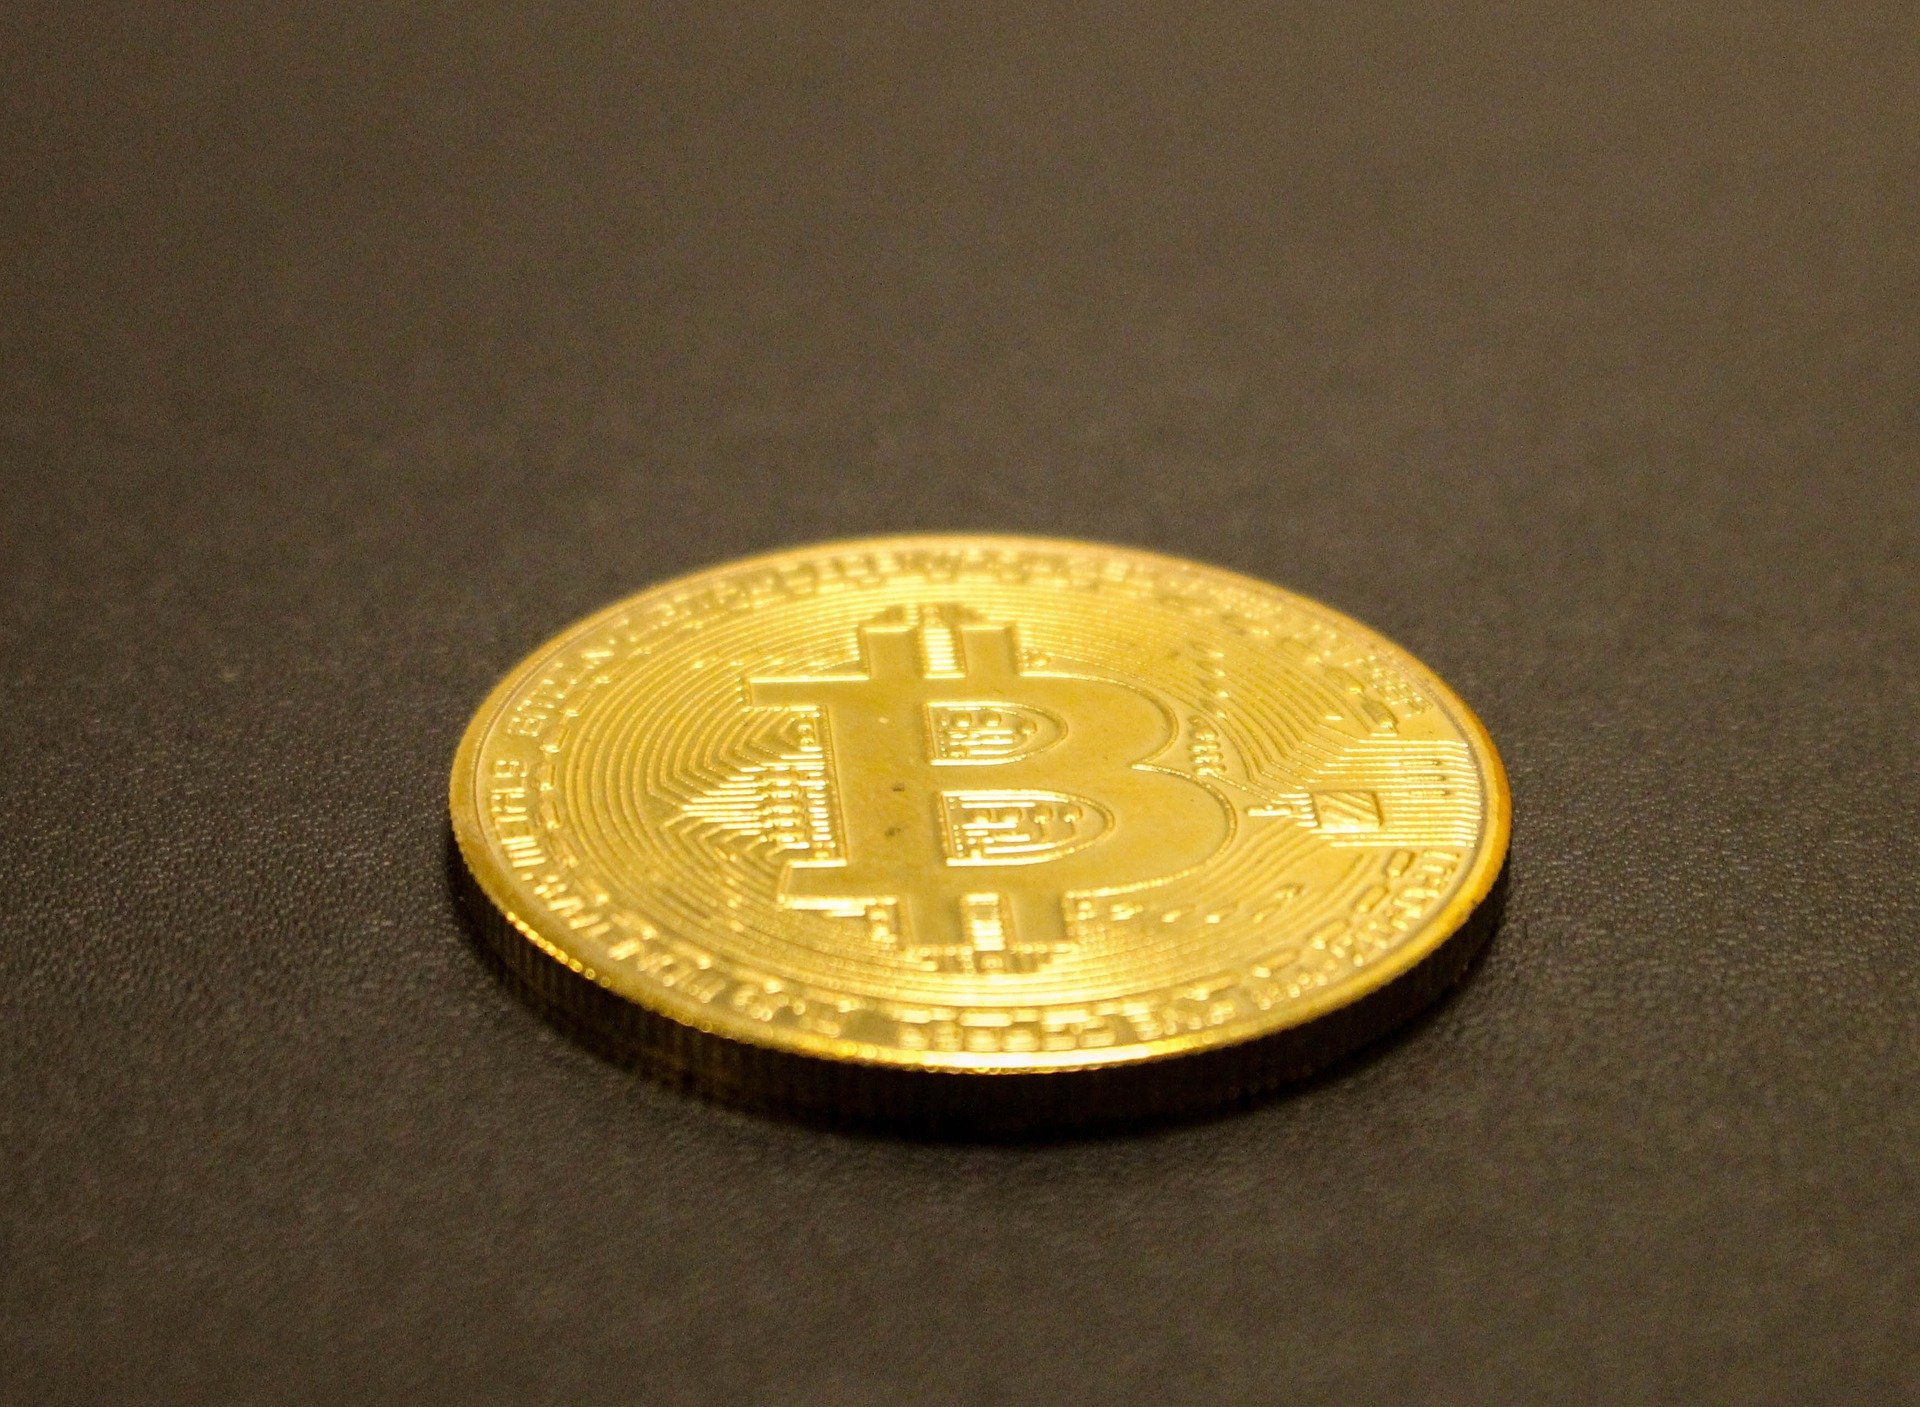 Crypto Market Recovers as Bitcoin's Price Surges